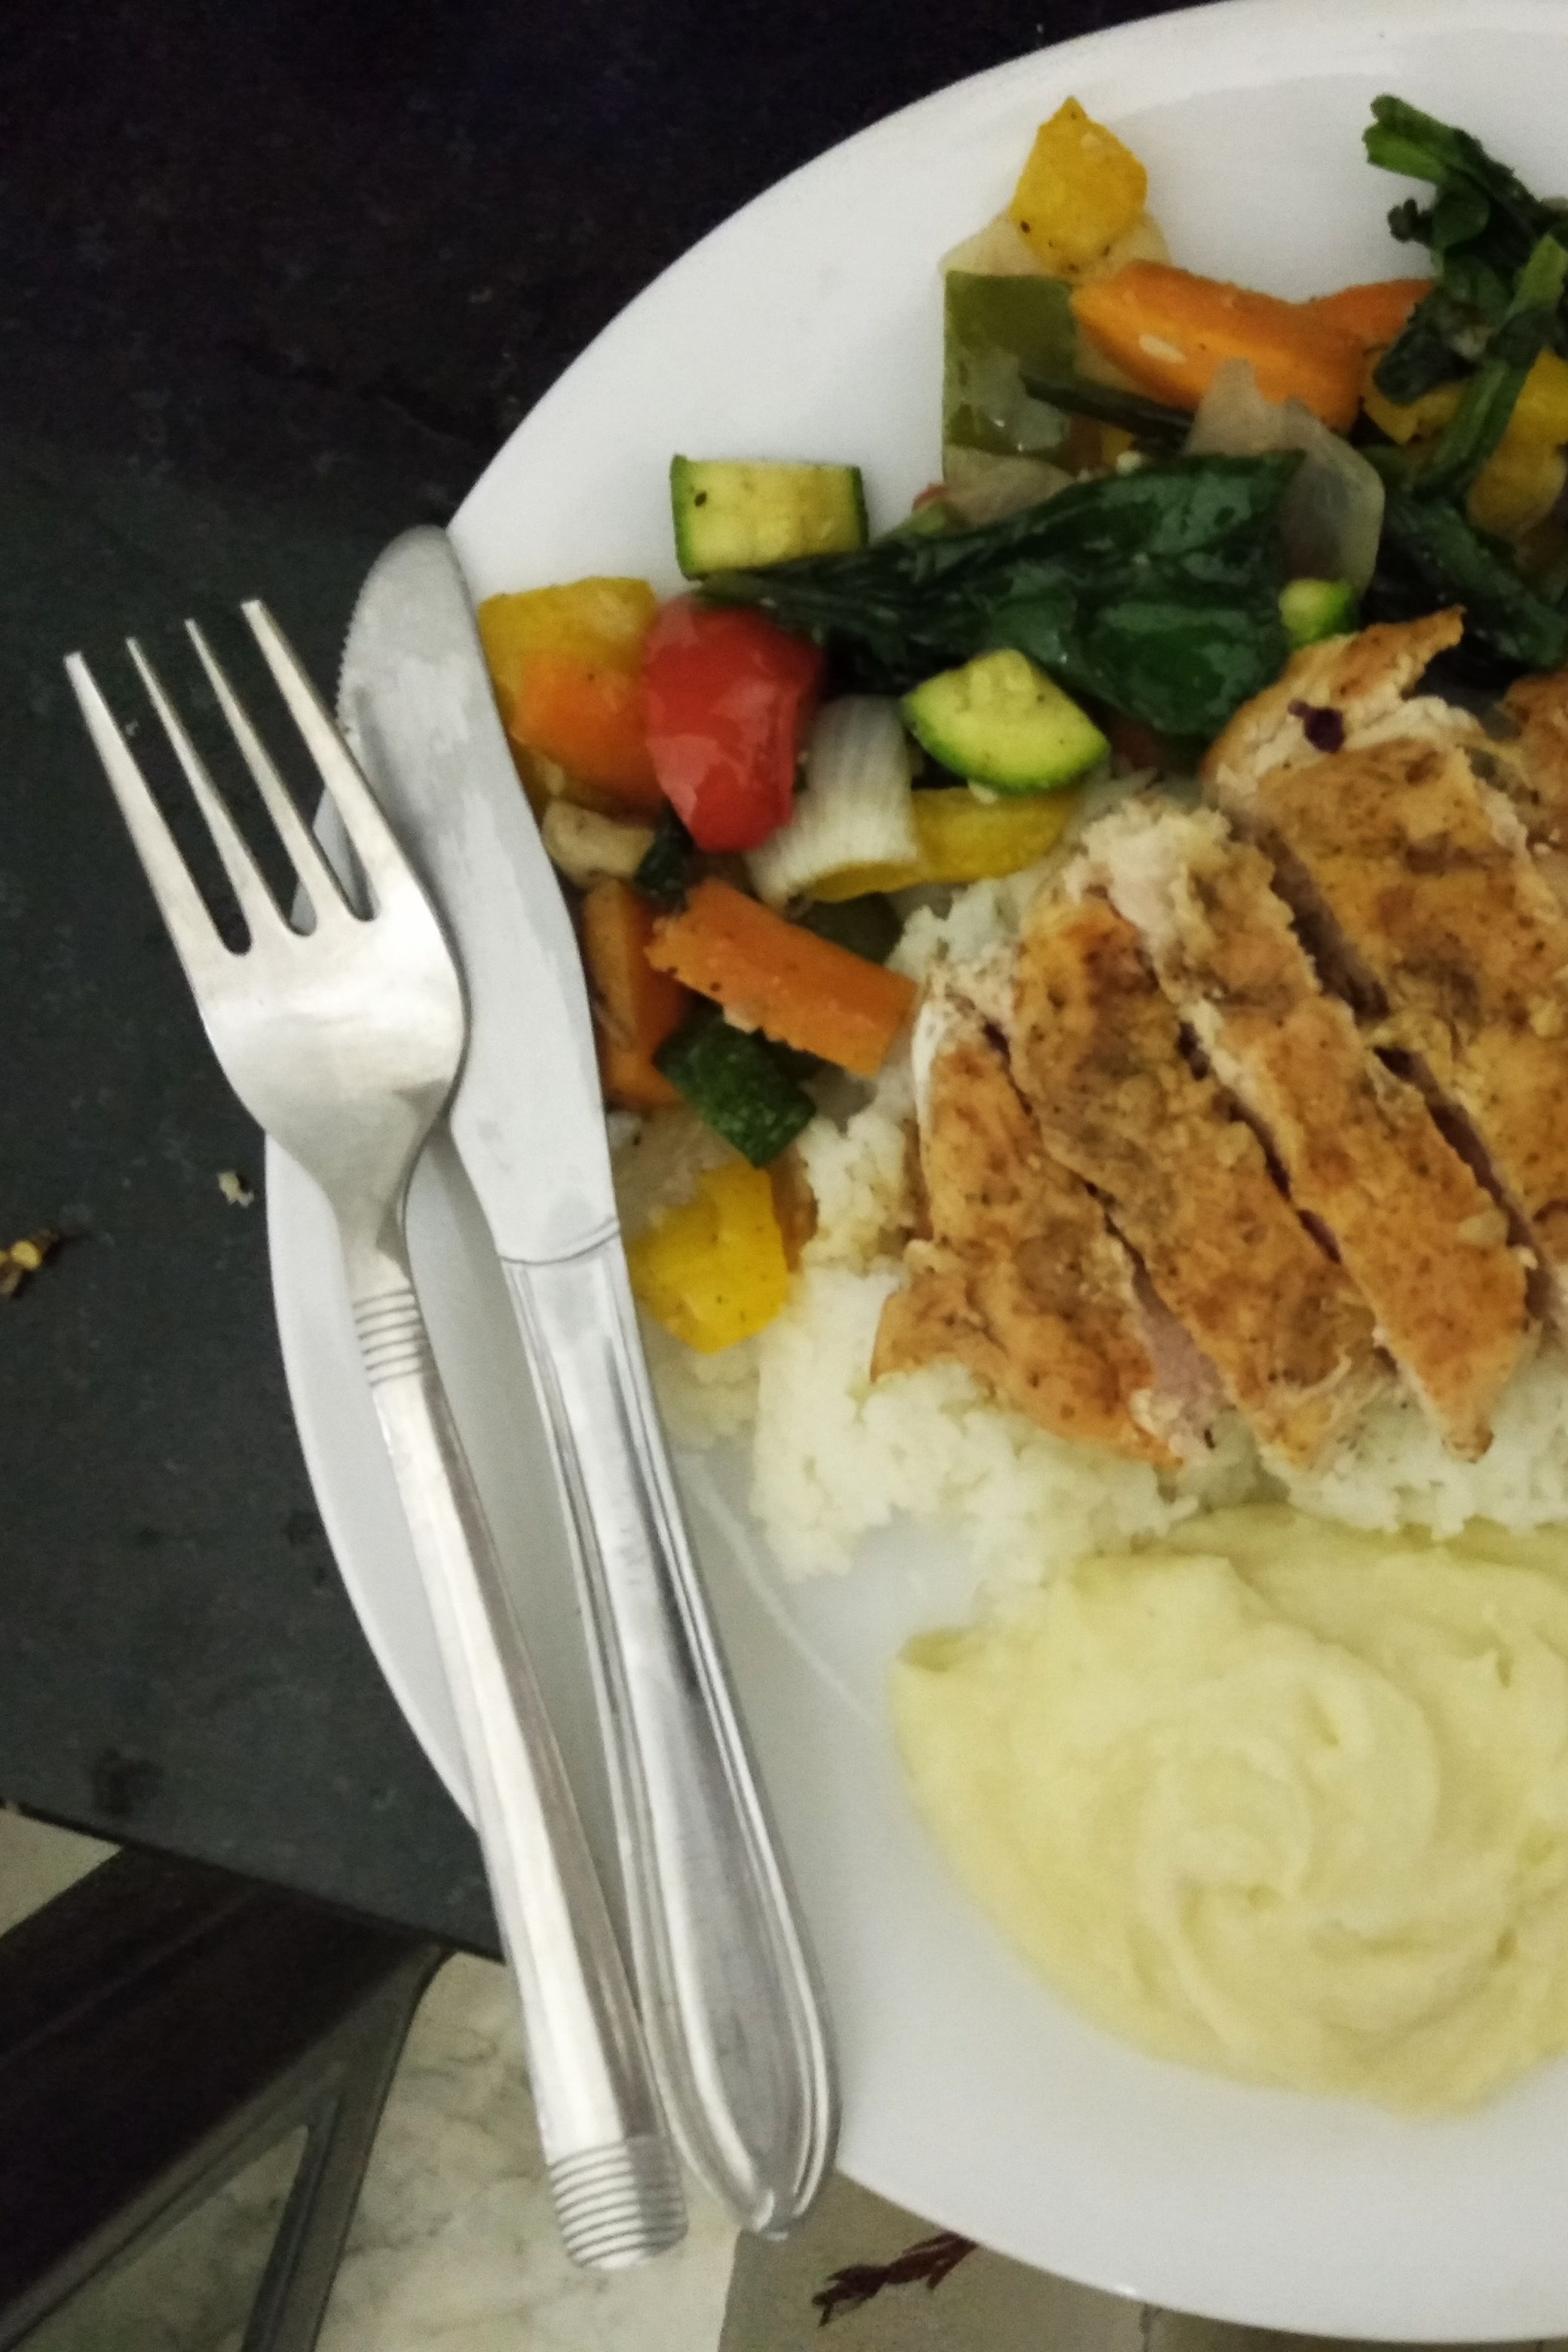 Grilled chicken breast with rice and veg